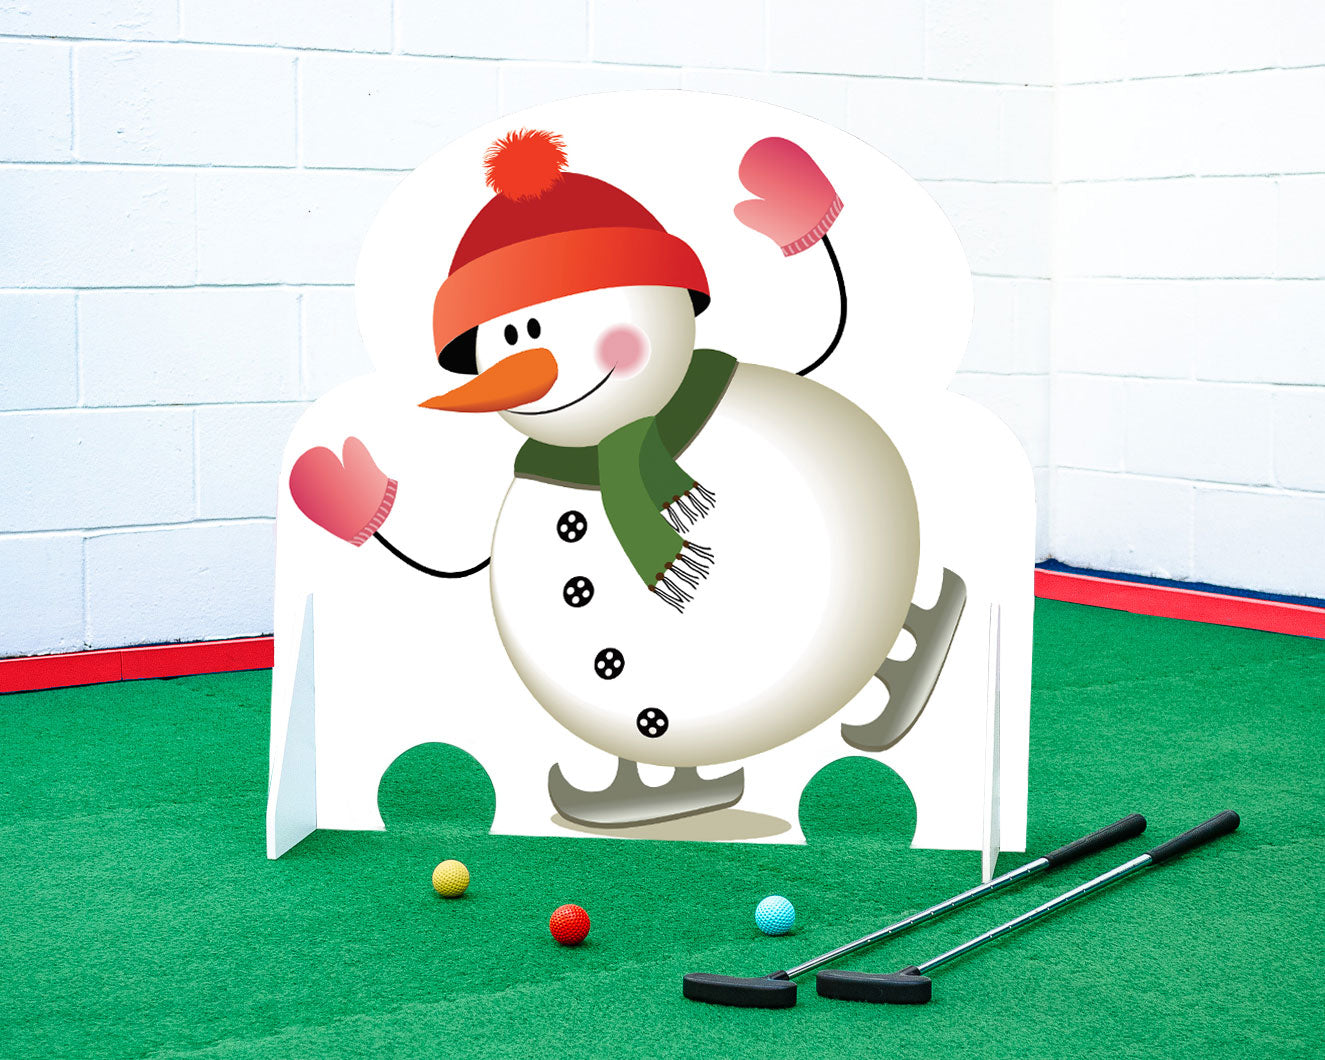 Skating Snowman - Event Stuff Ltd Owns Putterfingers.com!